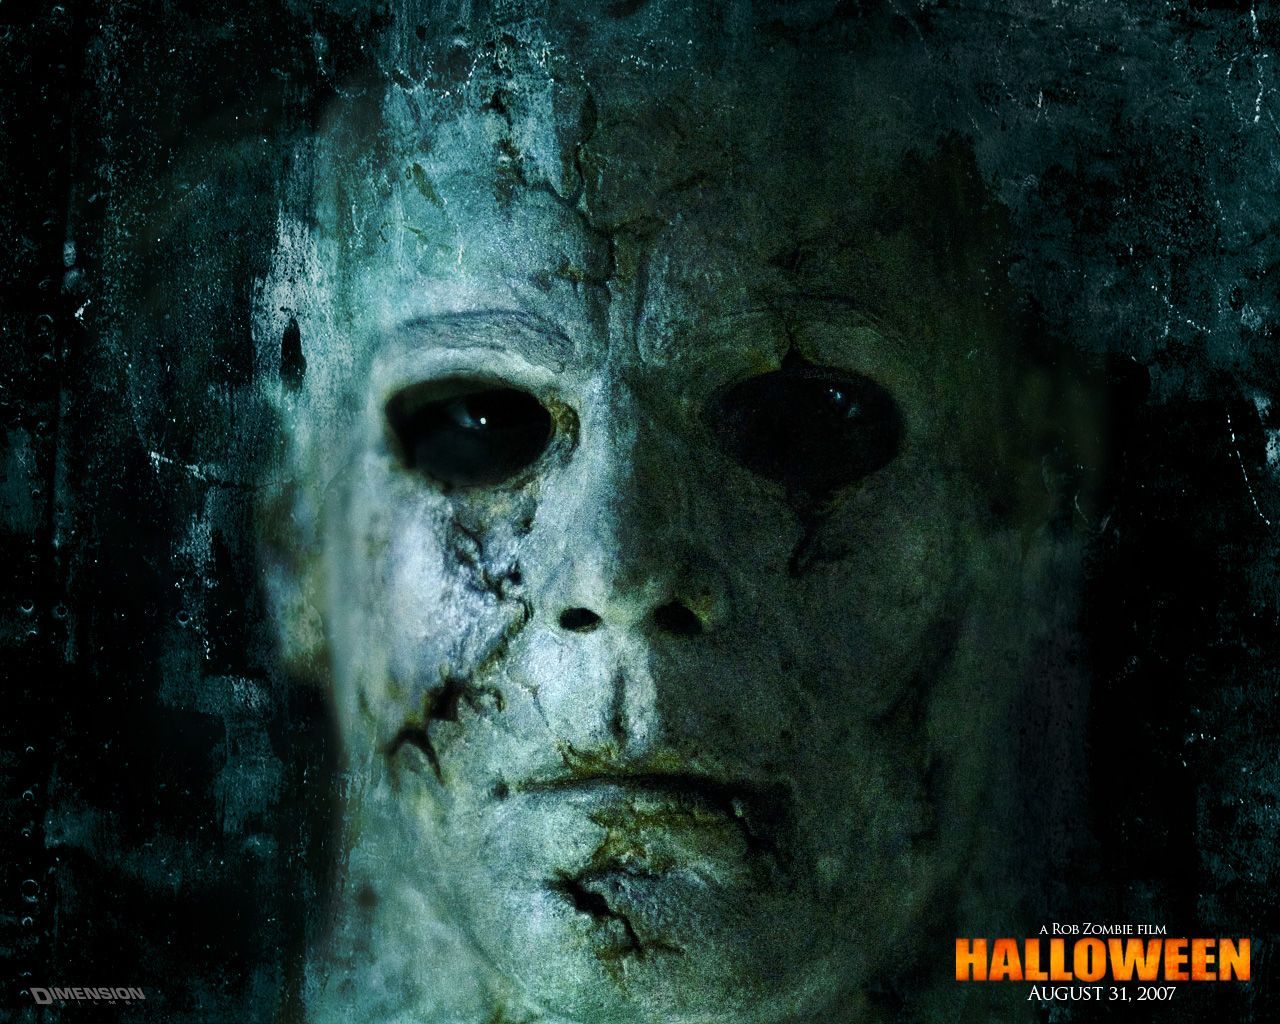 the rob zombie halloween movie michael myers wall clock - Halloween Movie By Rob Zombie